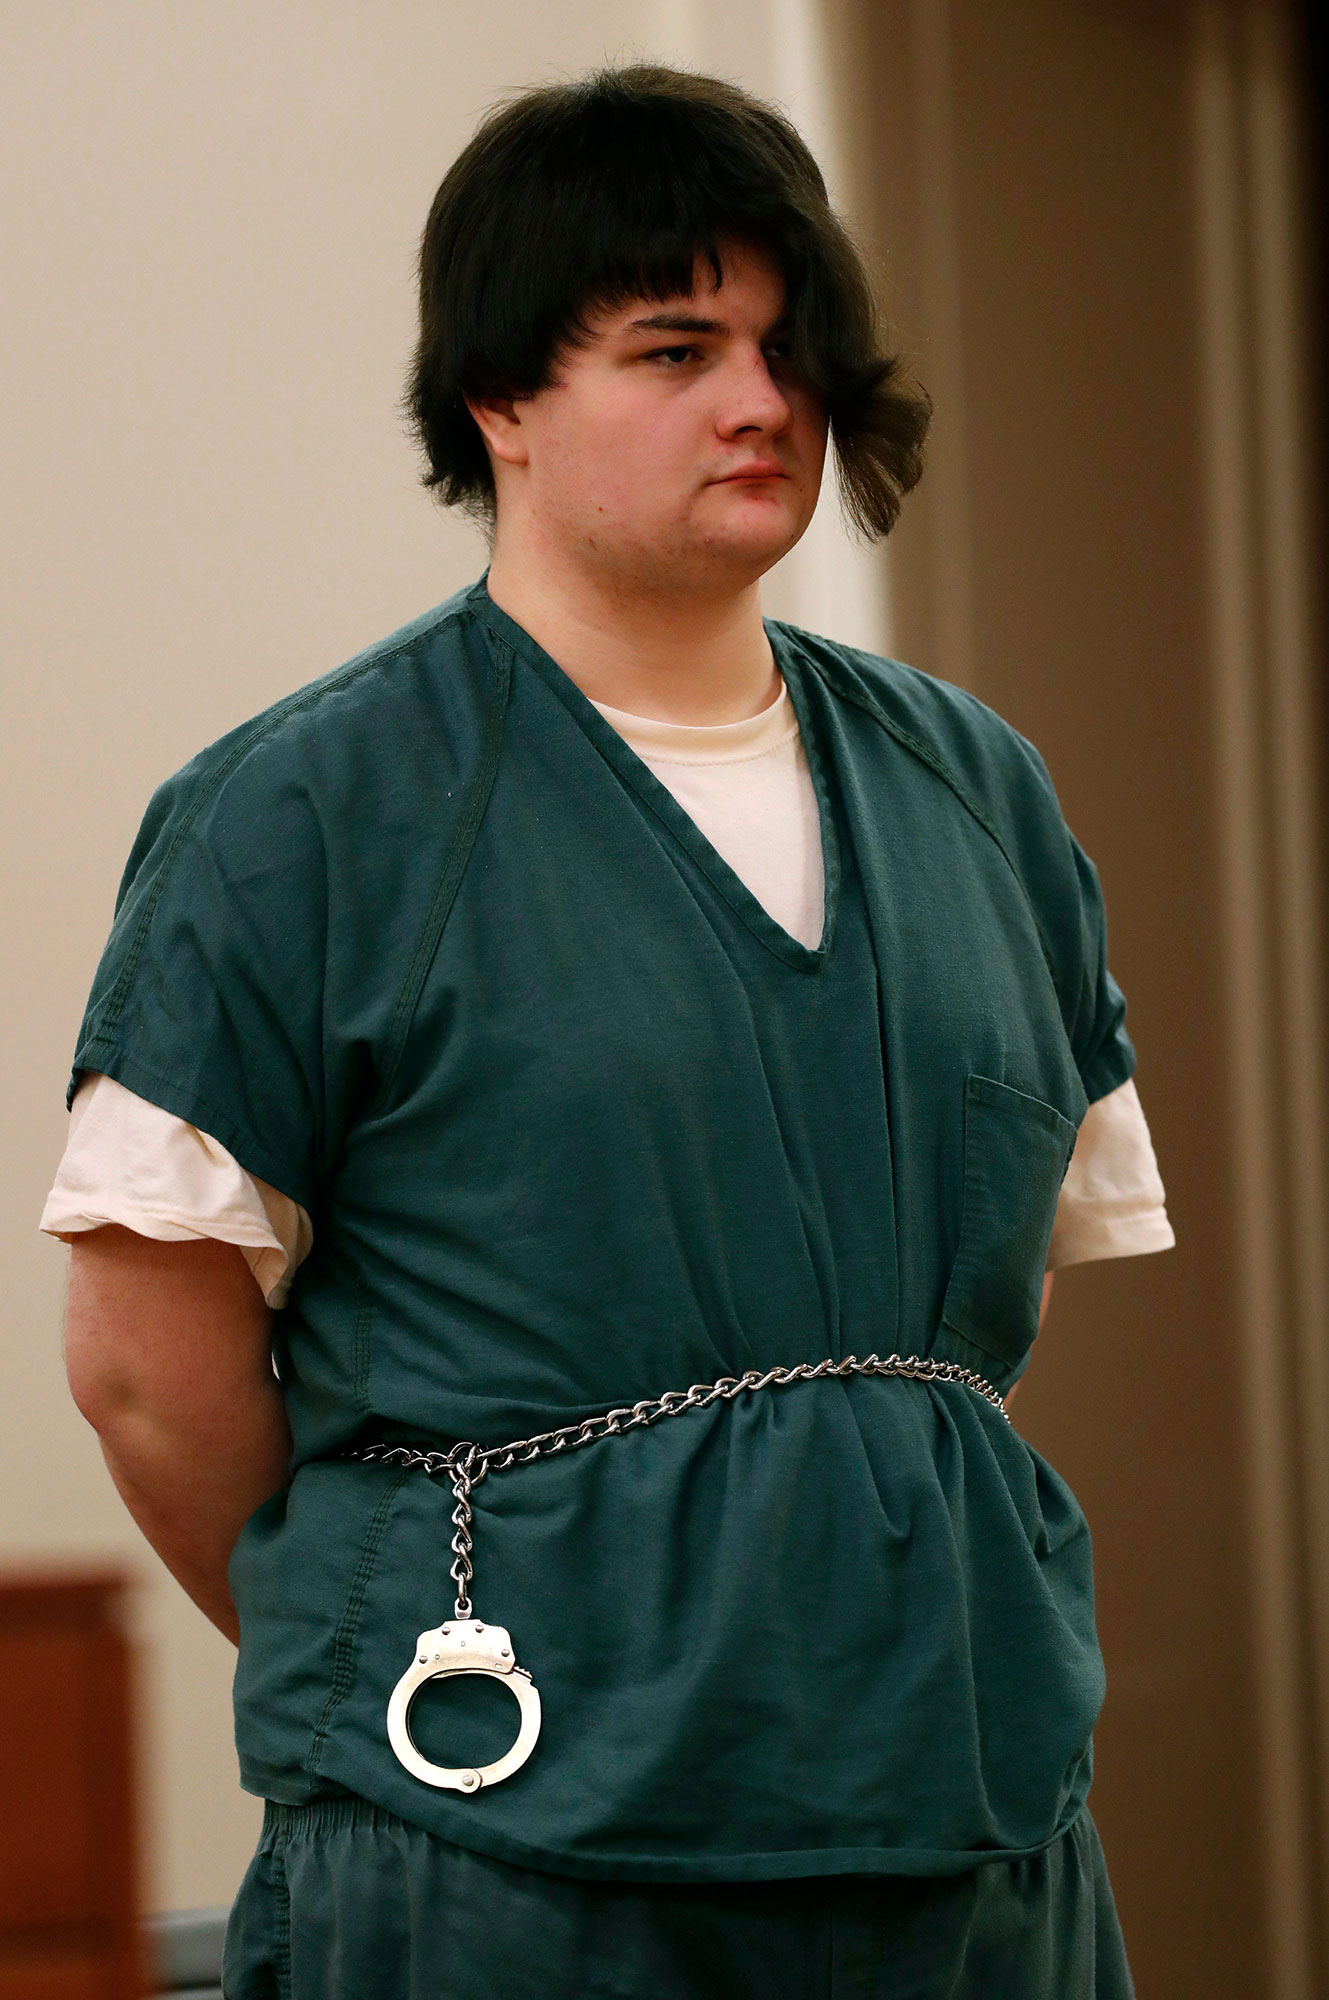 Maine Teen Who Fatally Stabbed Parents and Chihuahua Before Laughing on 911 Call Gets 40 Years